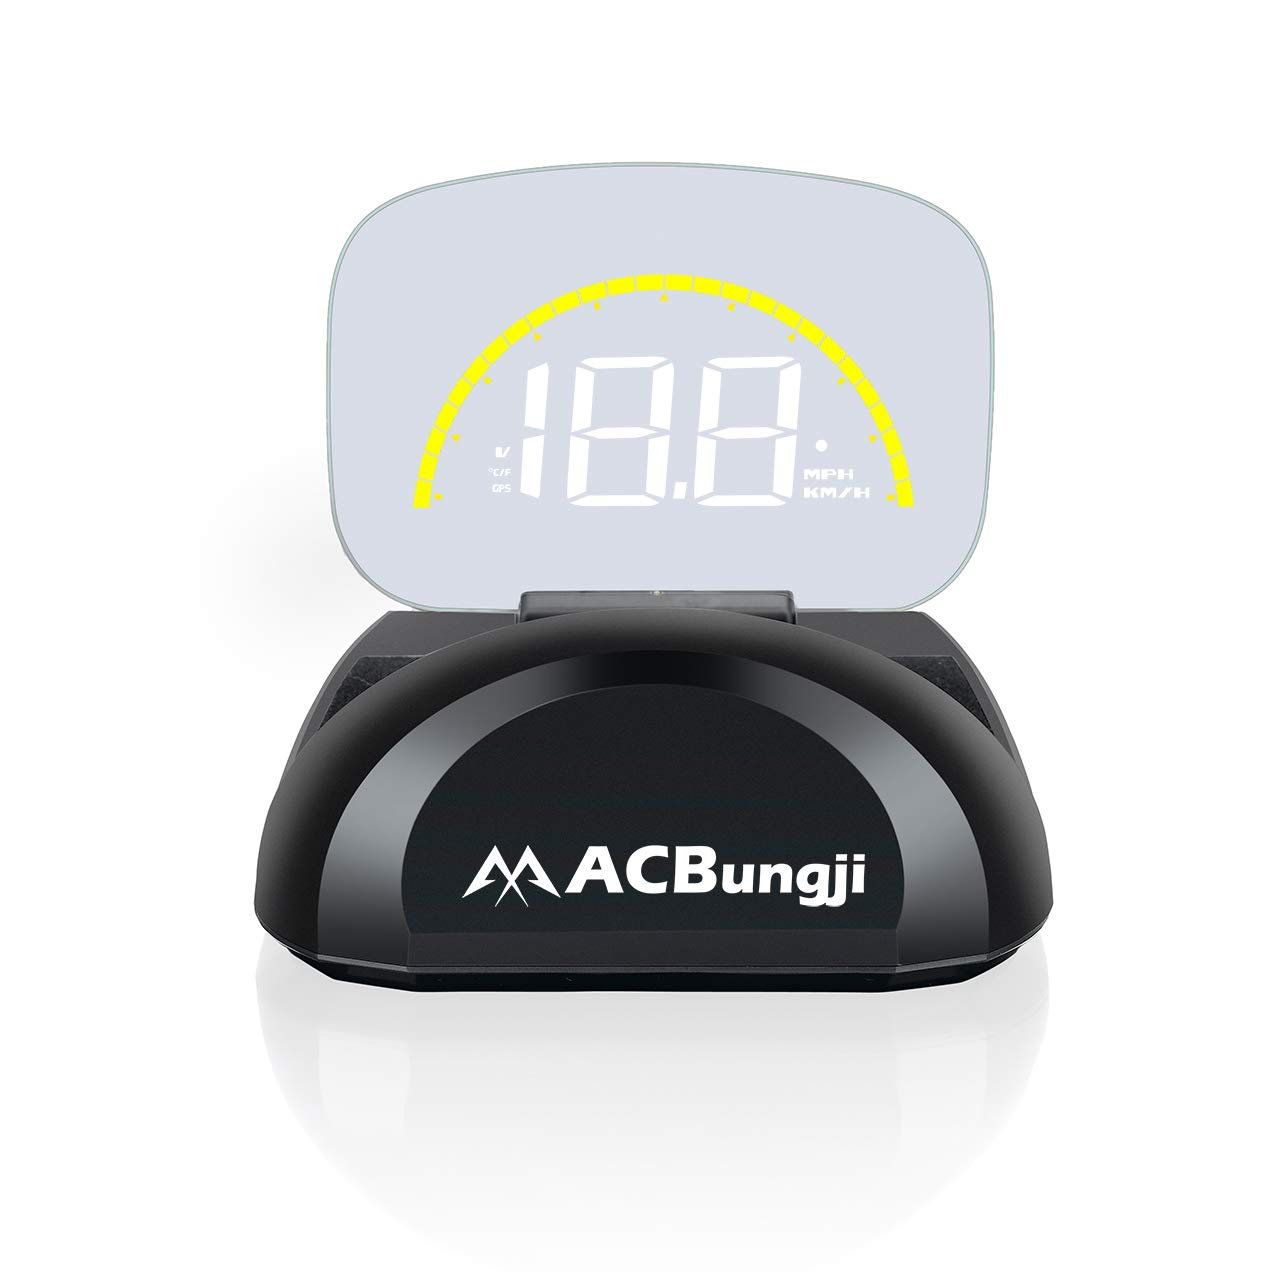 ACBungji Car HUD Head Up Display OBD2 GPS Dual Mode Speedometer Tachometer Projector RPM MPH Over Speed Alarm Voltmeter Water Temperature Warning Auto Truck SUV RV Universal